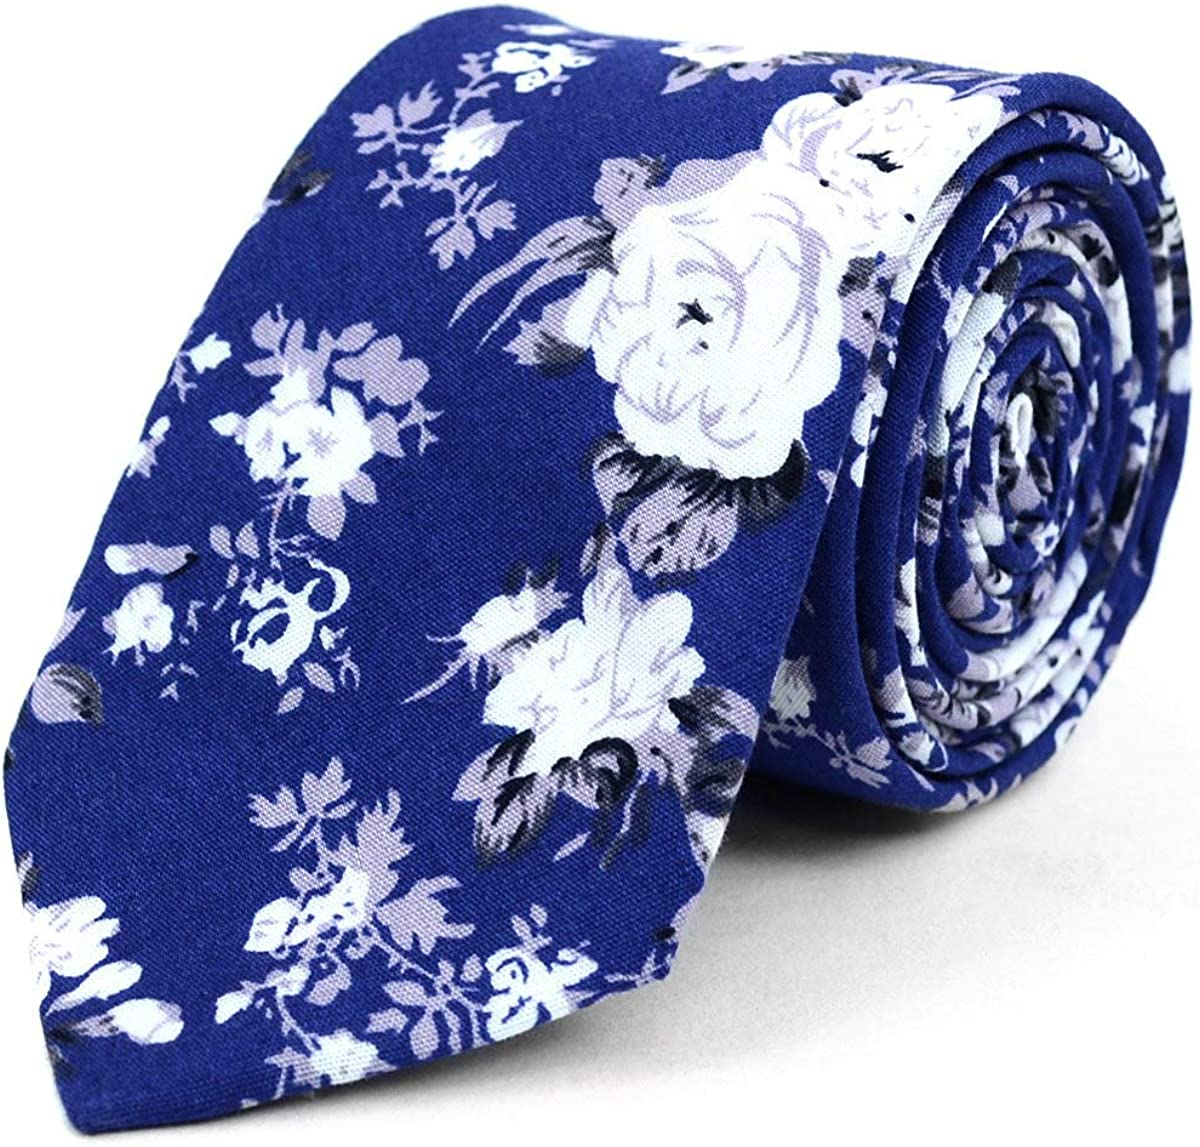 Parquet Men's Fashion Wedding Floral with Slim Box Gift Clearance SALE! Limited time! Neckties Daily bargain sale